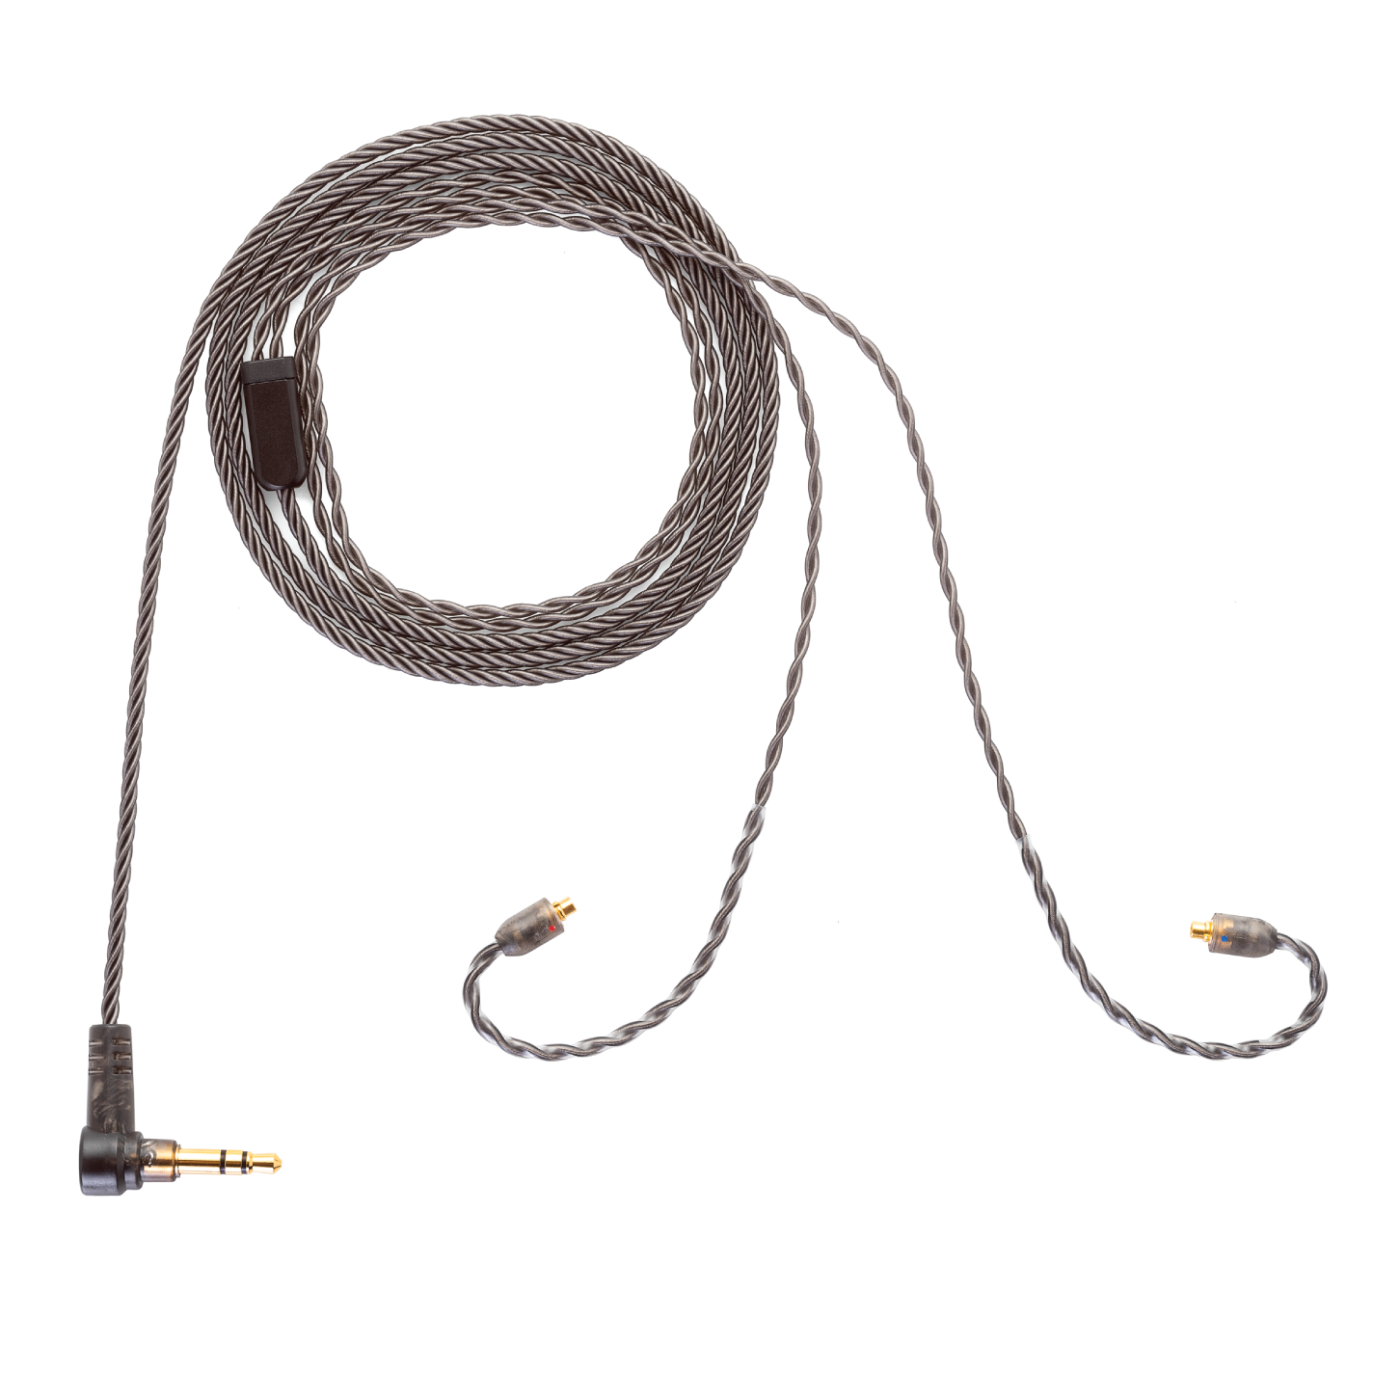 Smoky Litz Earphone Cable - 3.5mm Stereo Plug to MMCX Connector